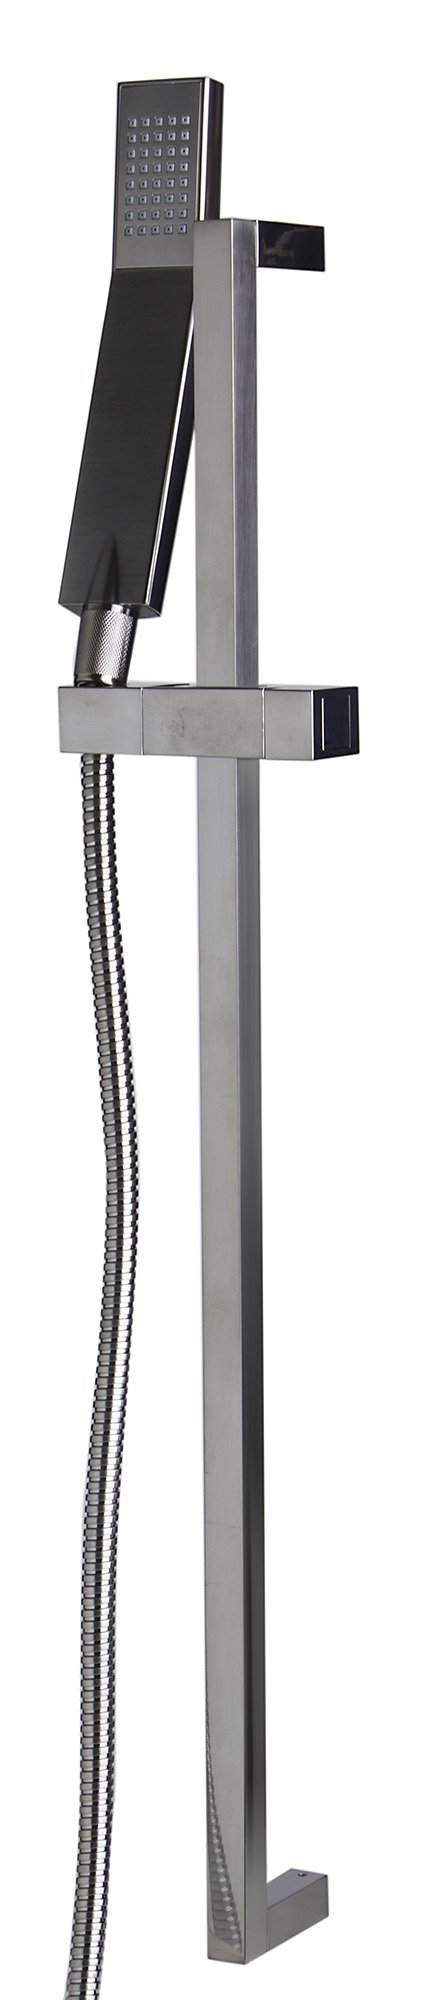 ALFI brand AB7606 Sliding Rail Hand Held Shower Head Set with Hose, Brushed Nickel